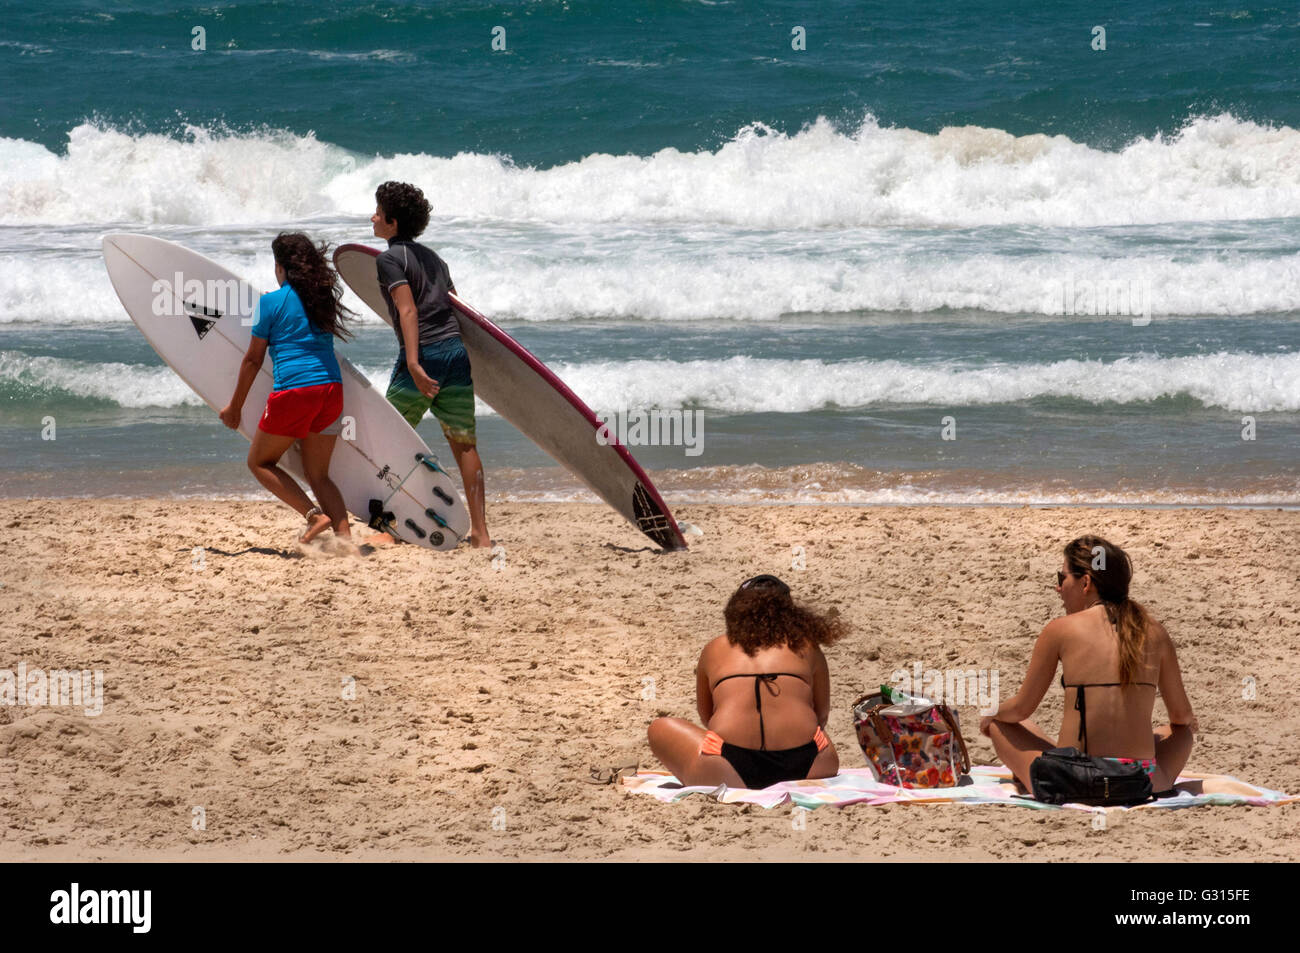 Surfers heading for the waves at the beaches of Tel Aviv, Israel. - Stock Image